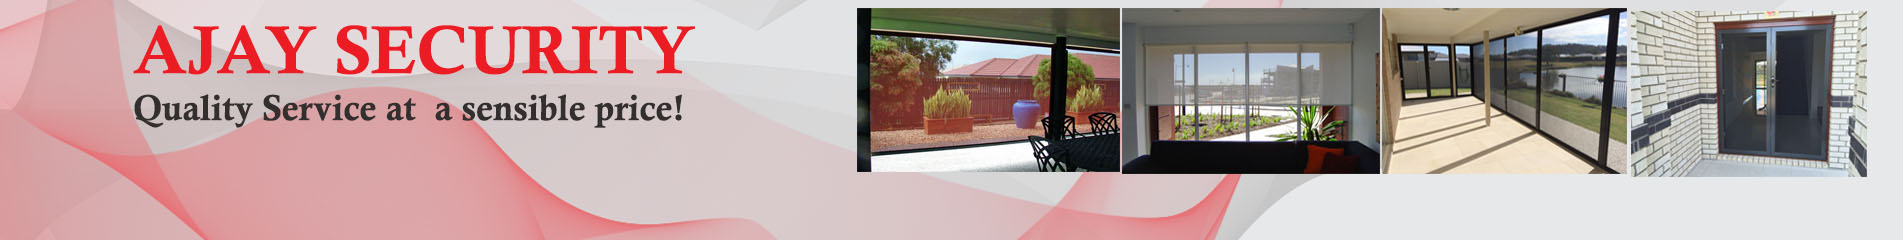 Security Screen Doors And Grills In Brisbane Qld